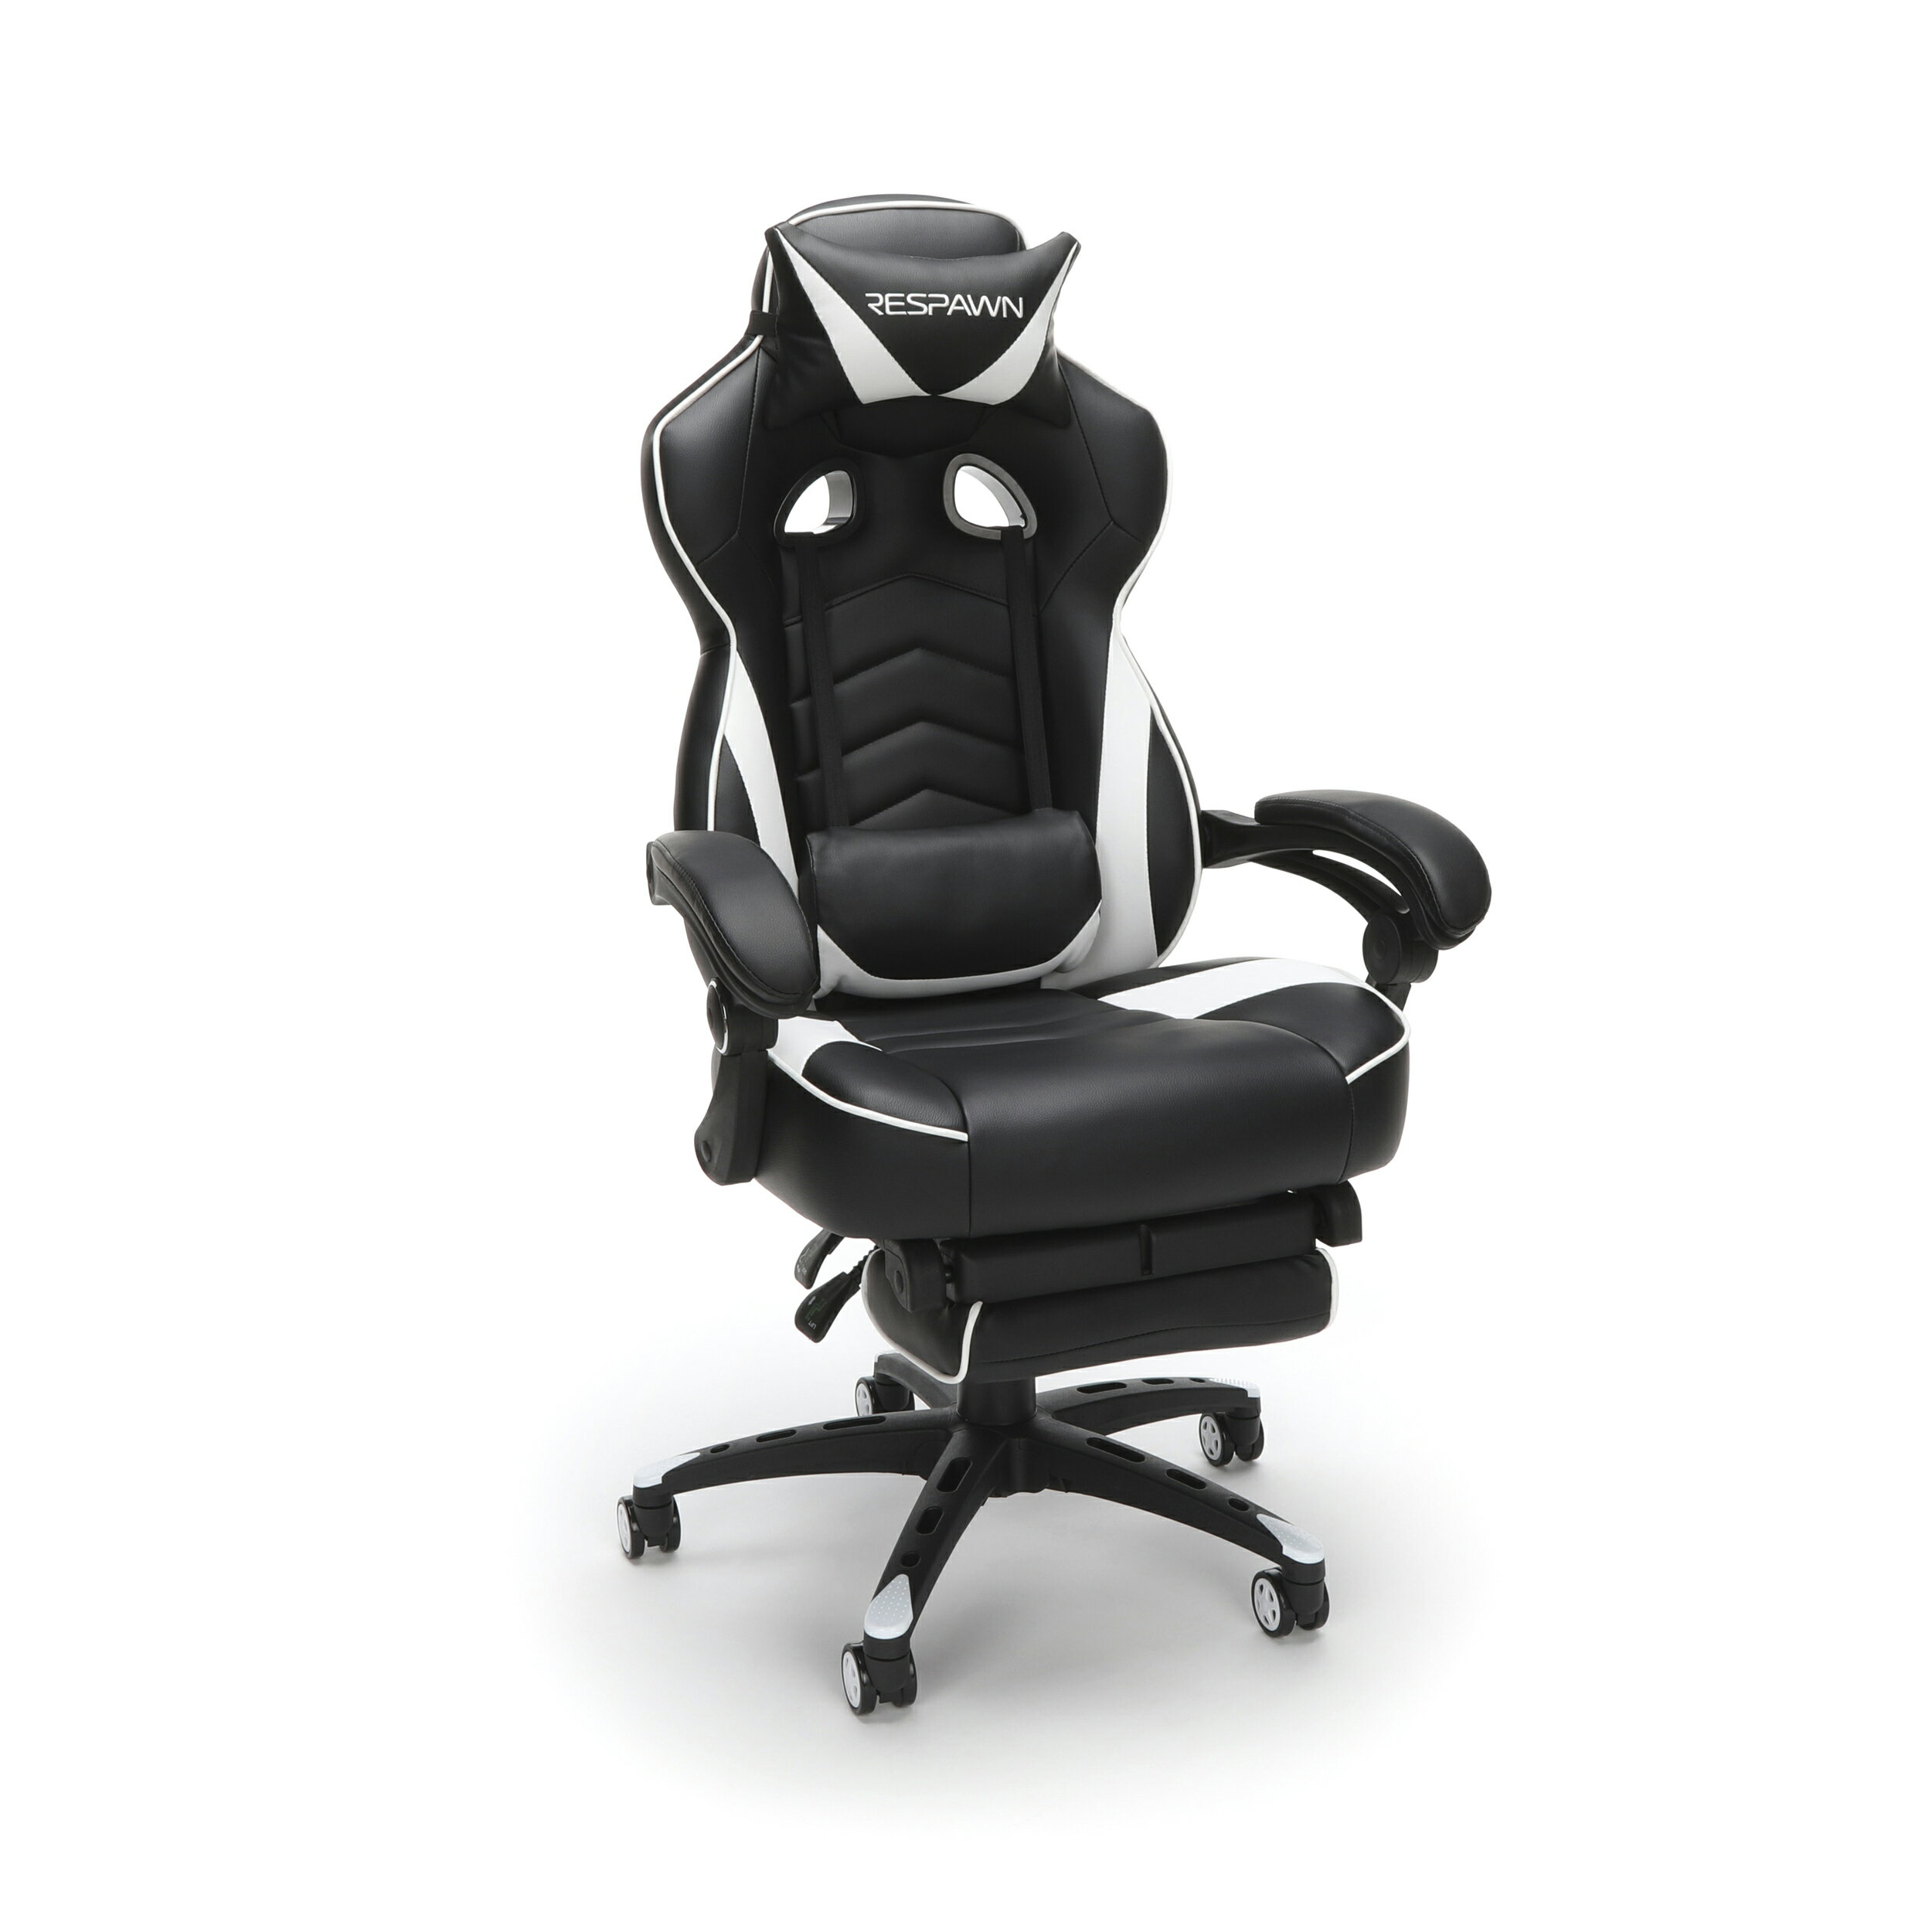 RESPAWN-110 Racing Style Gaming Reclining Ergonomic Chair